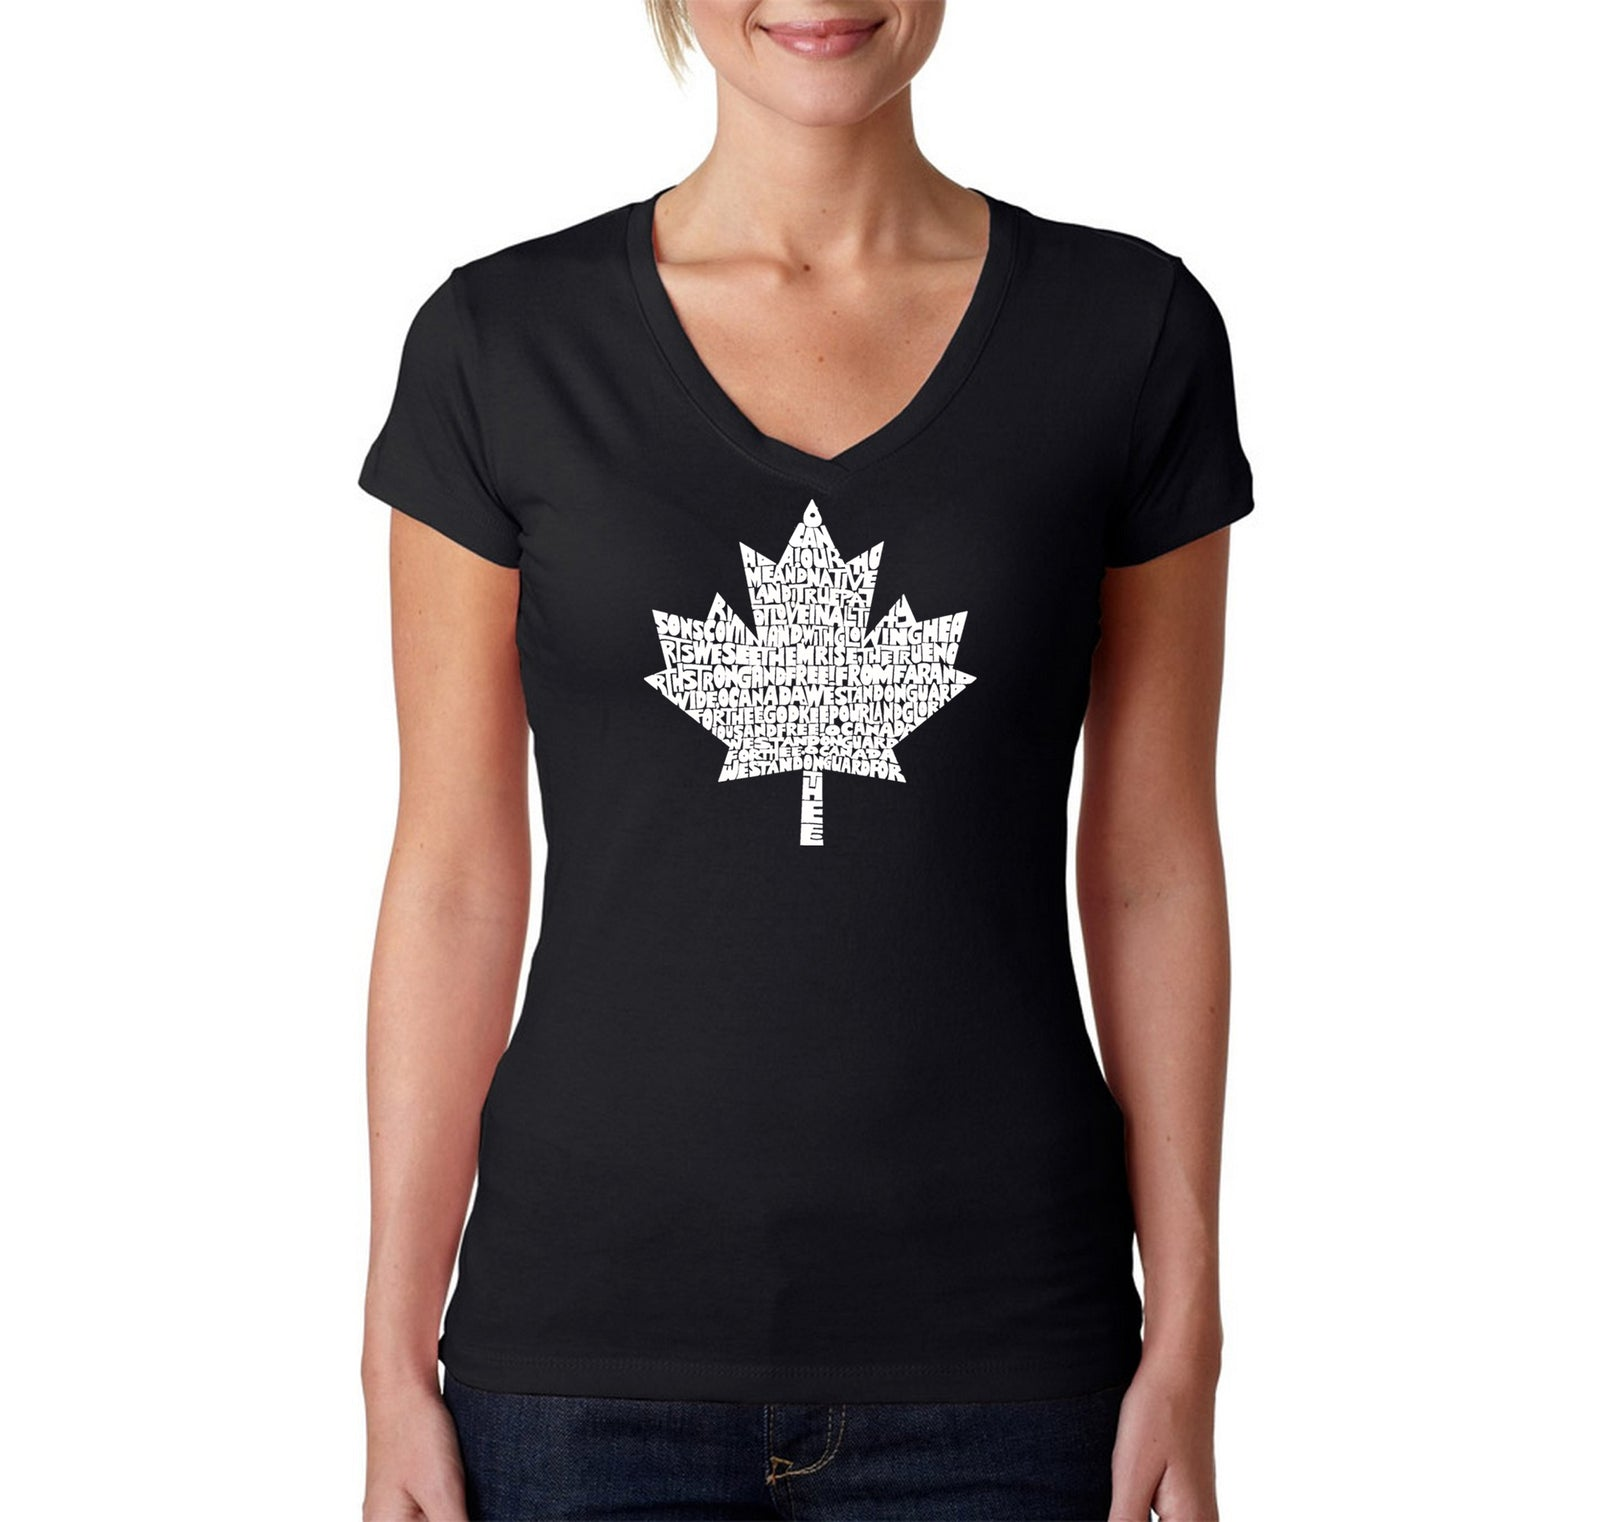 Women's V-Neck T-Shirt - CANADIAN NATIONAL ANTHEM